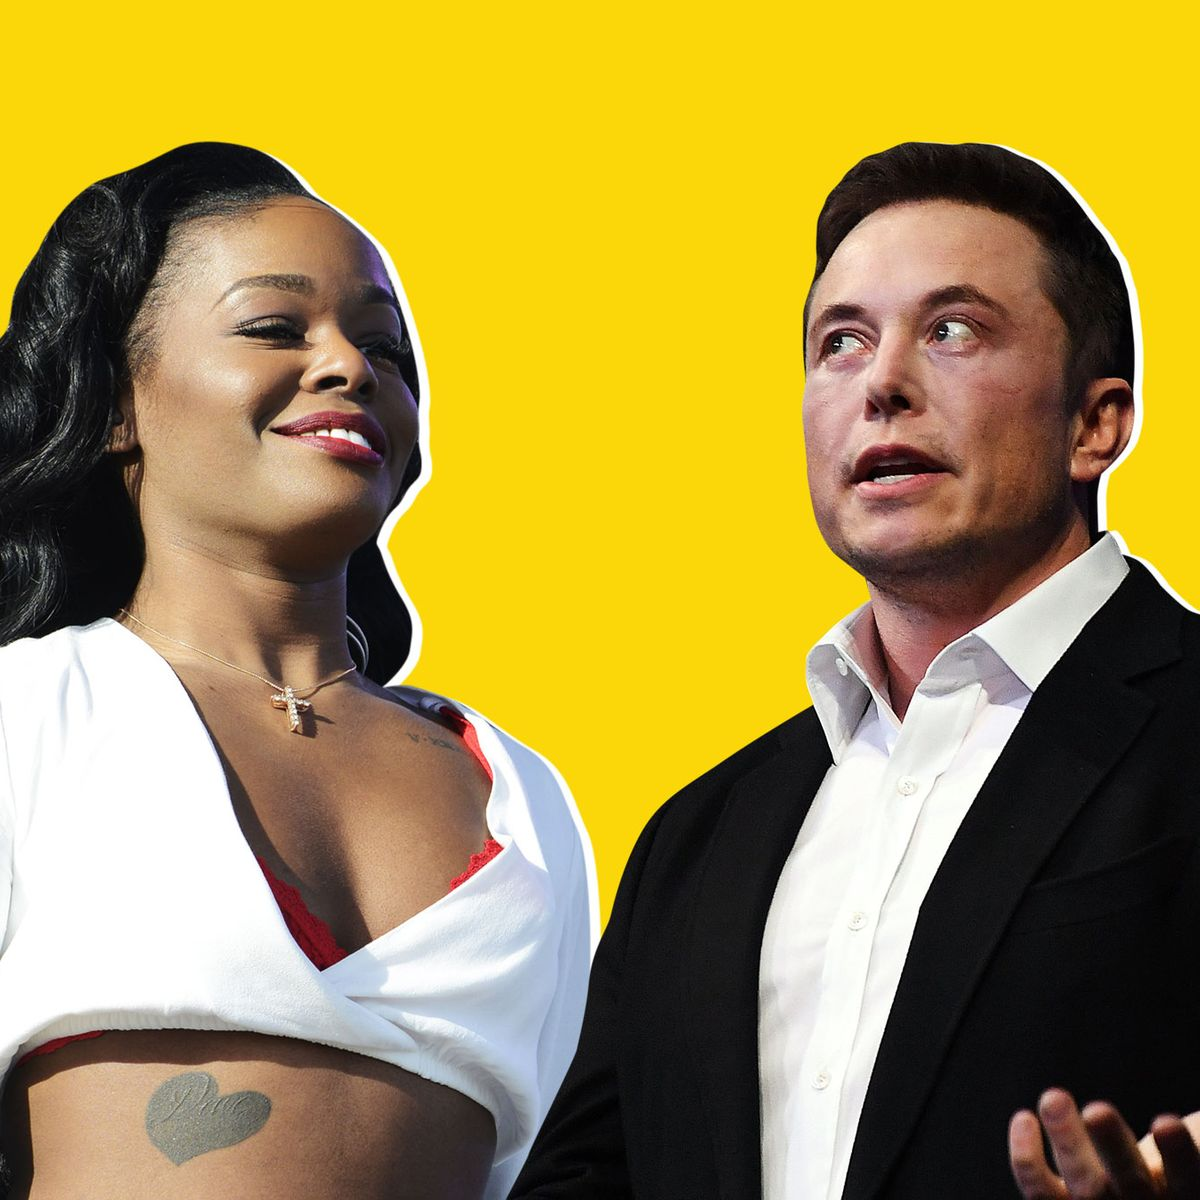 Azealia Banks Claims Elon Musk Doesn't Have Funding